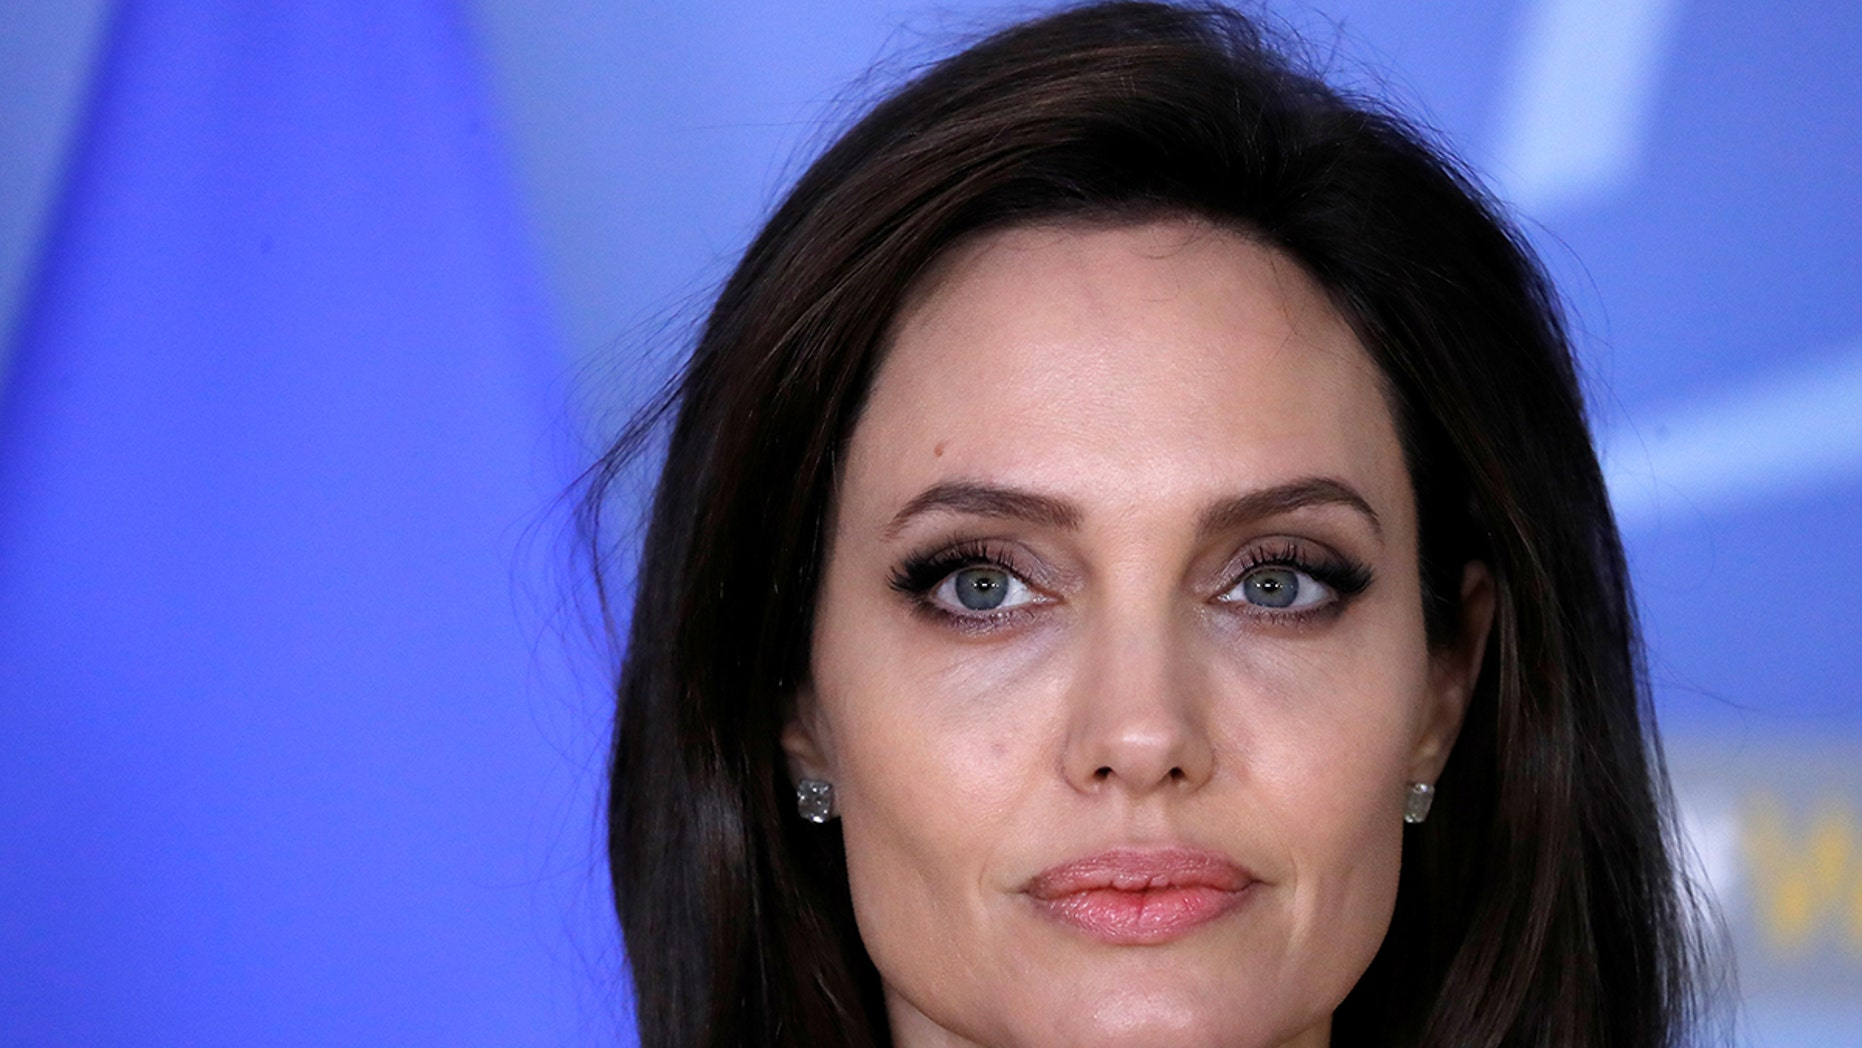 UNHCR Special Envoy actor Angelina Jolie takes part in a news conference at the NATO headquarters in Brussels, Belgium, January 31, 2018. REUTERS/Yves Herman - RC1FB8FE35C0